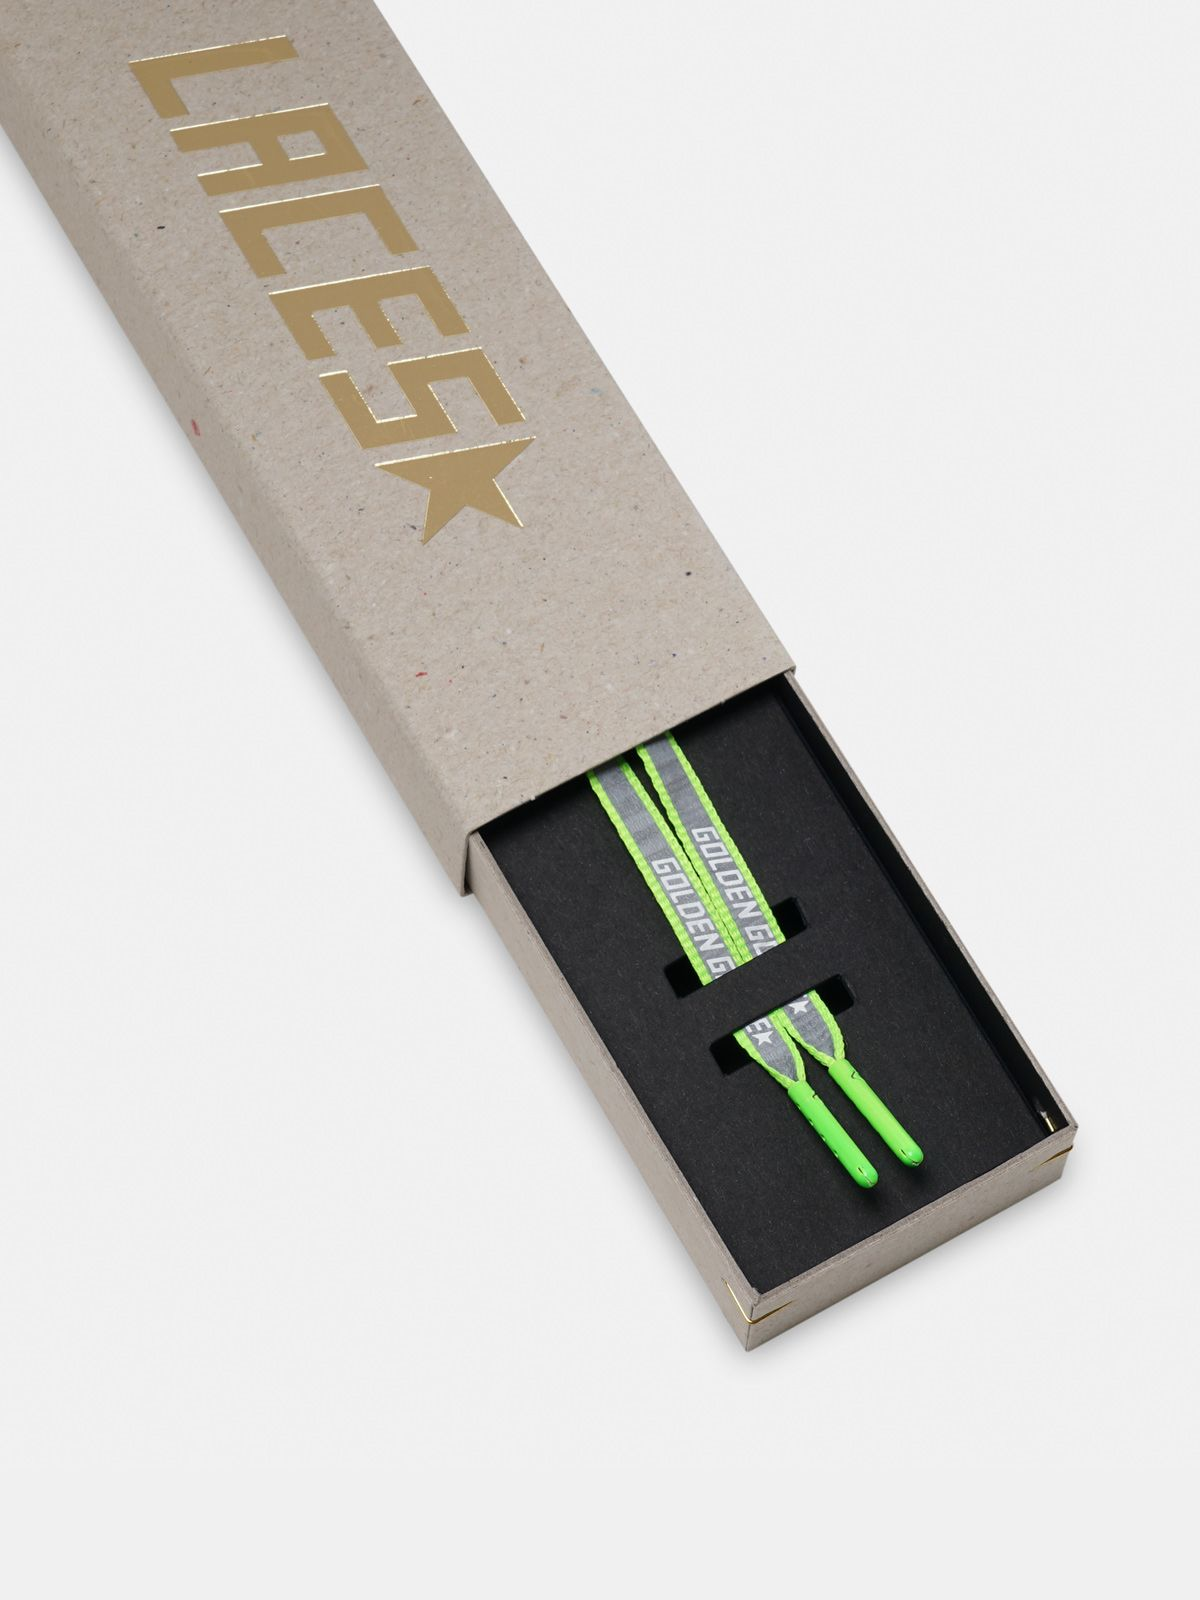 Golden Goose - Women's neon green reflective laces with logo in